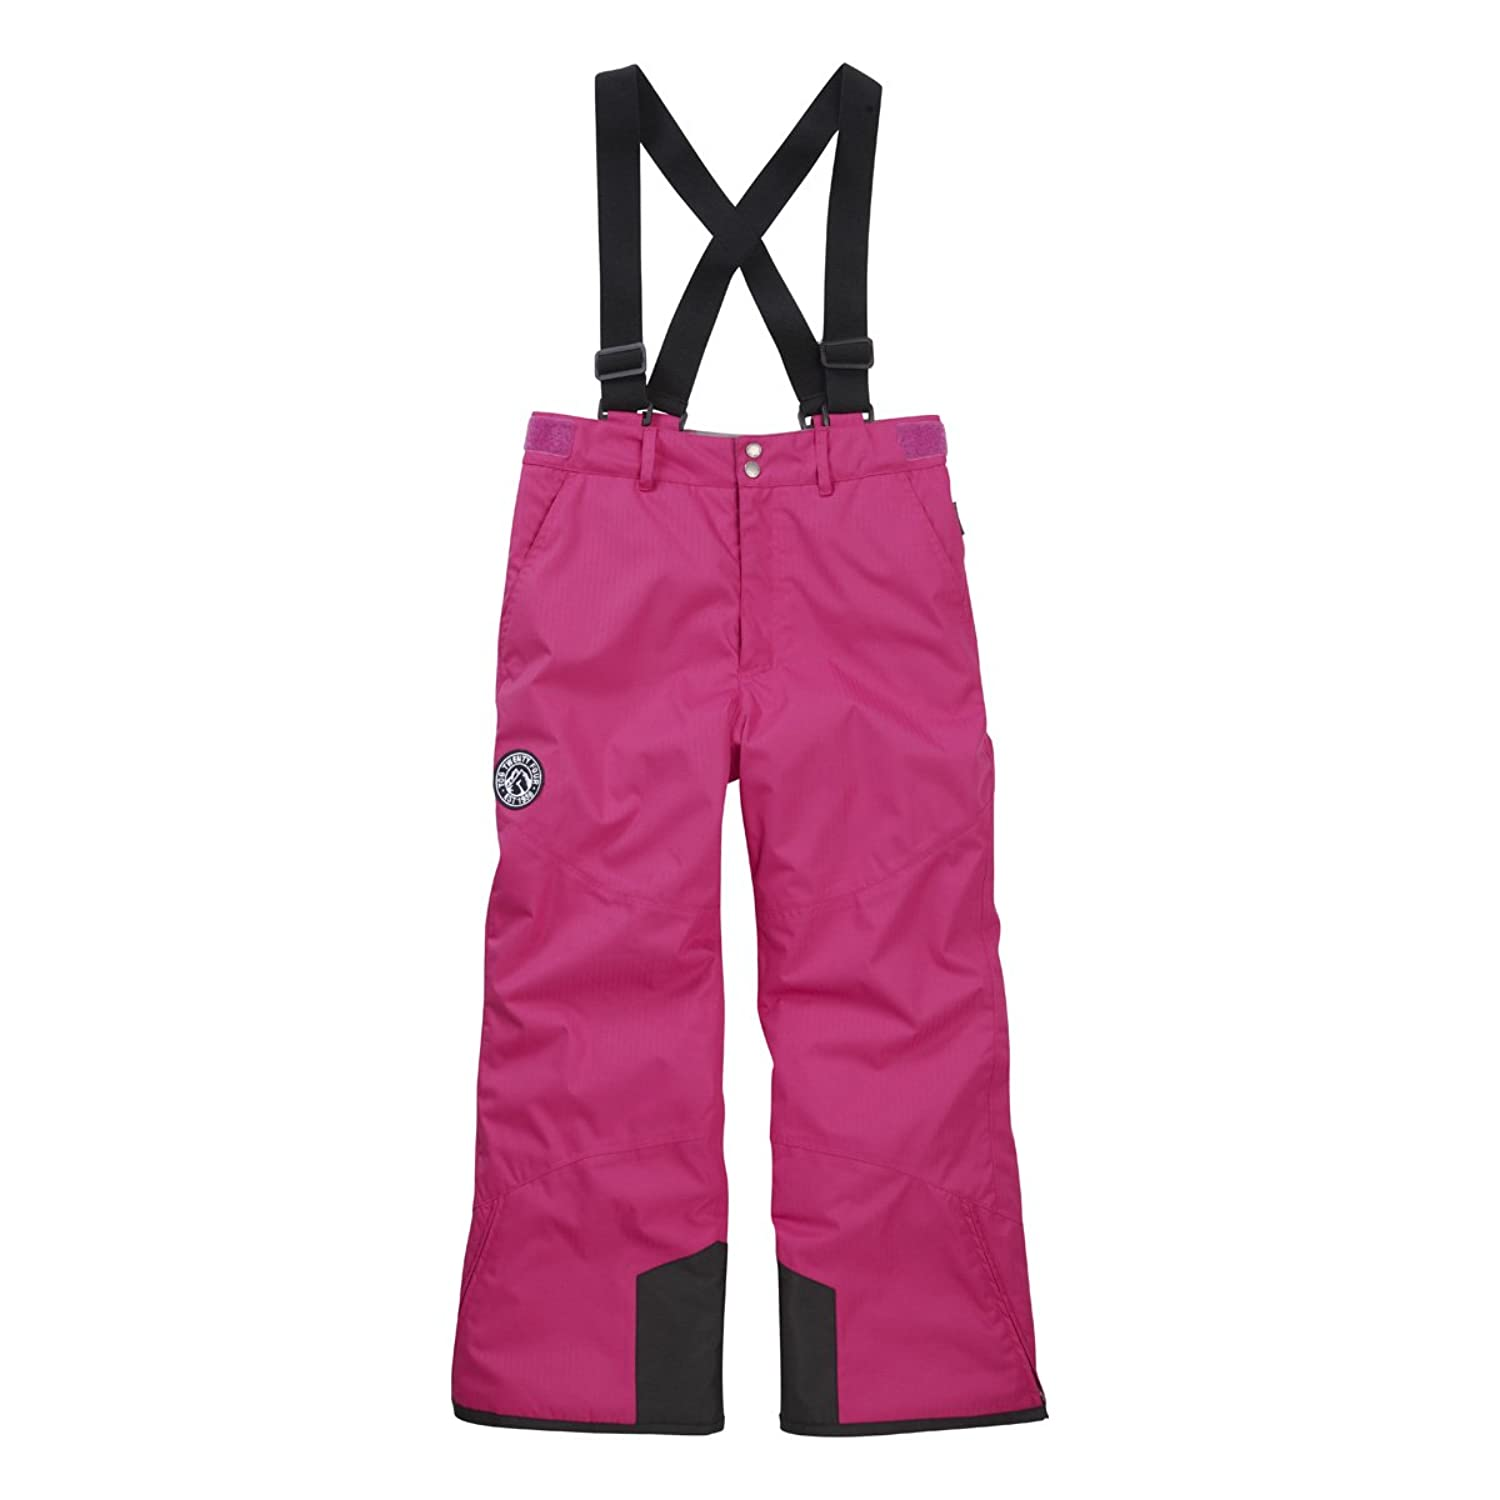 PANTALON DE SKI MILATEX SLIDE ENFANT ROSE